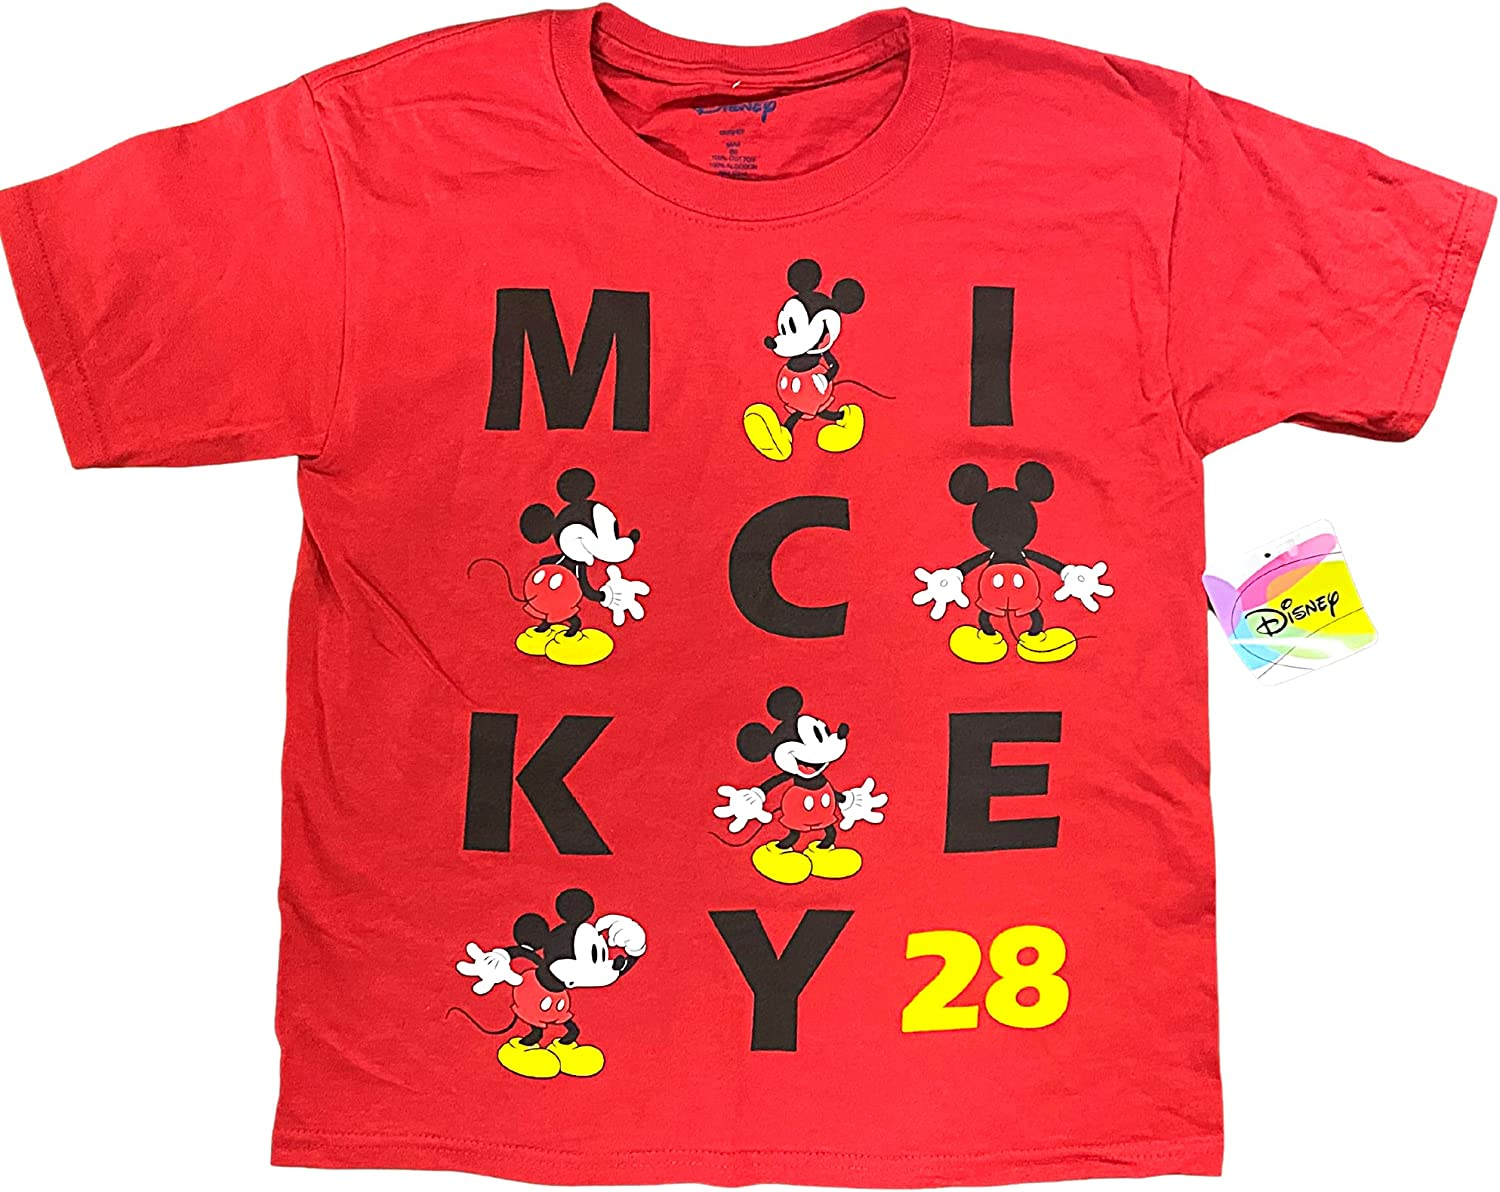 Disney Youth Boys Tee Big Mickey Name, Shirts for Travel and Vacation, Red (Small, one_Size)